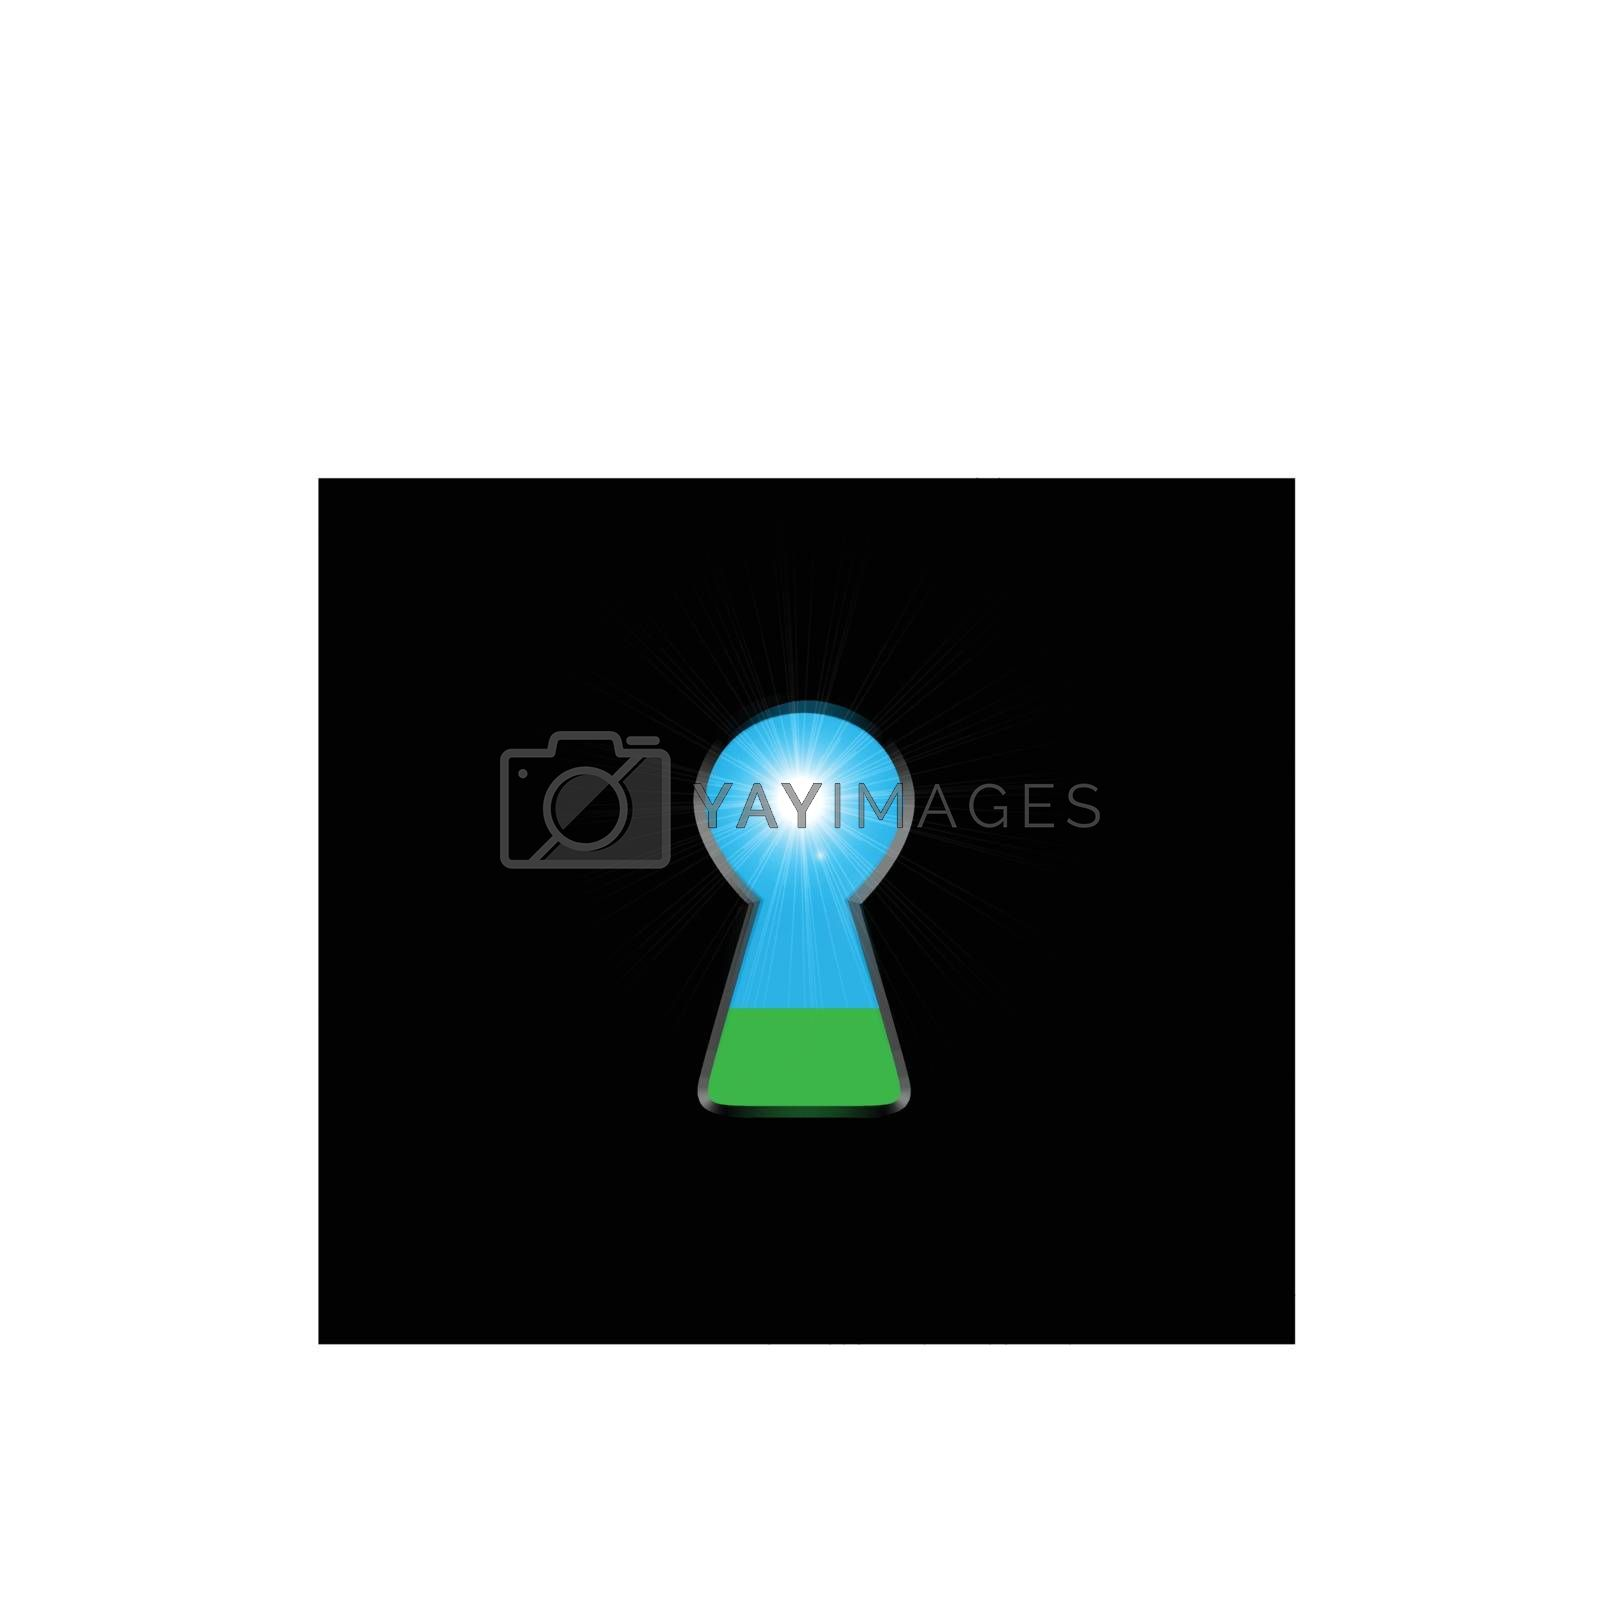 Keyhole with light inside. Ecological concept, natural green grass and sky. Vector illustration